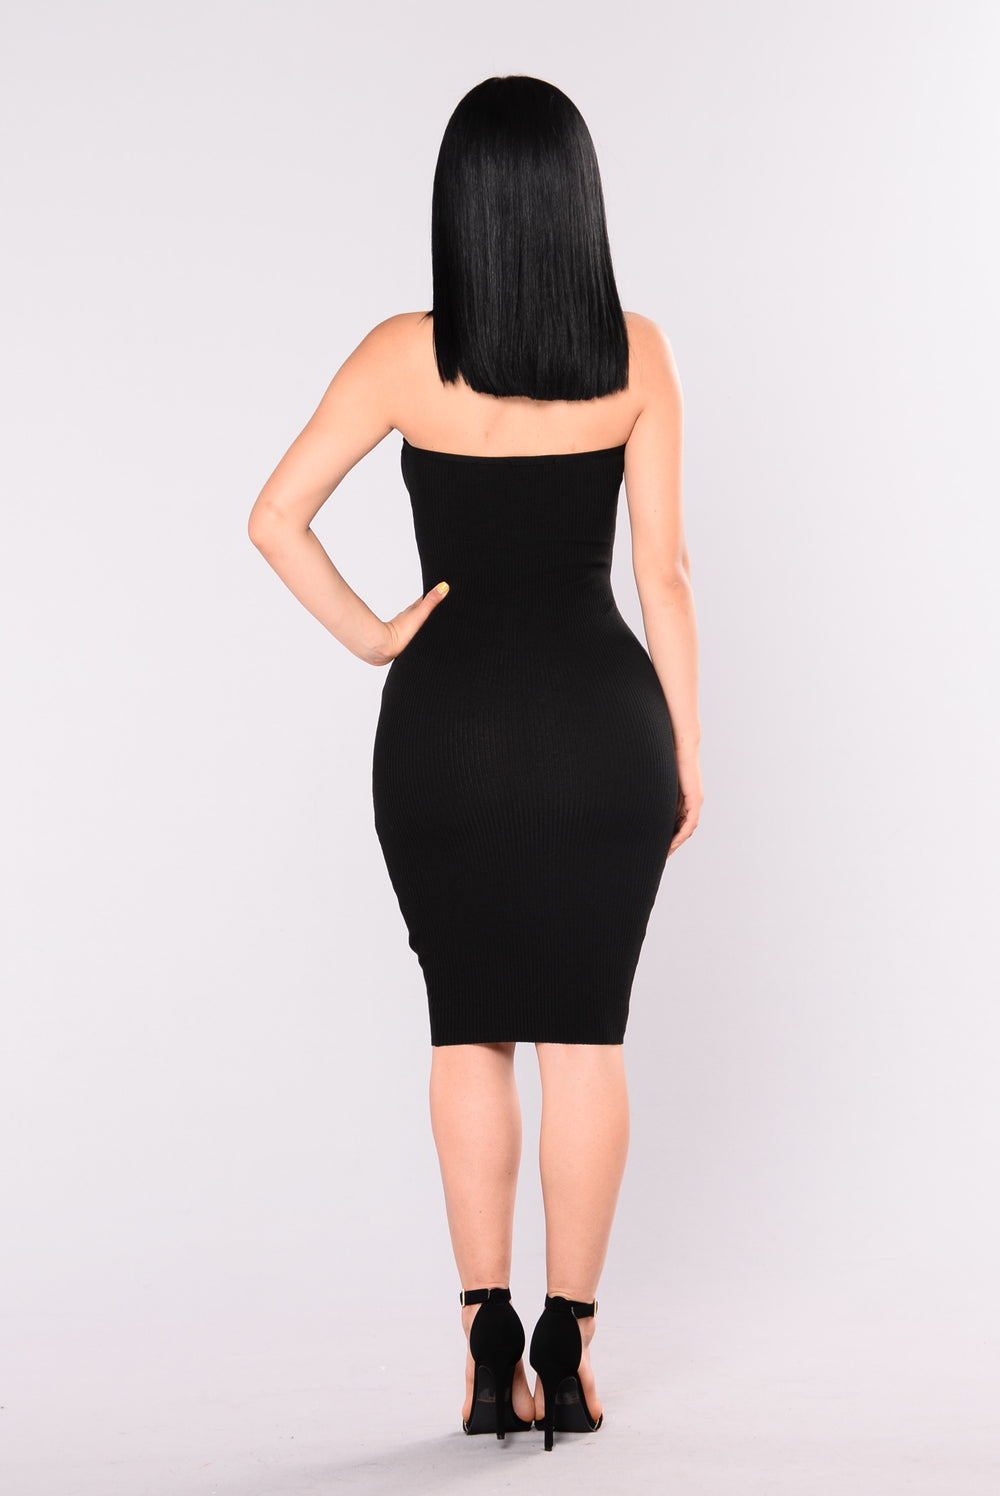 Tom Tube Dress - Black